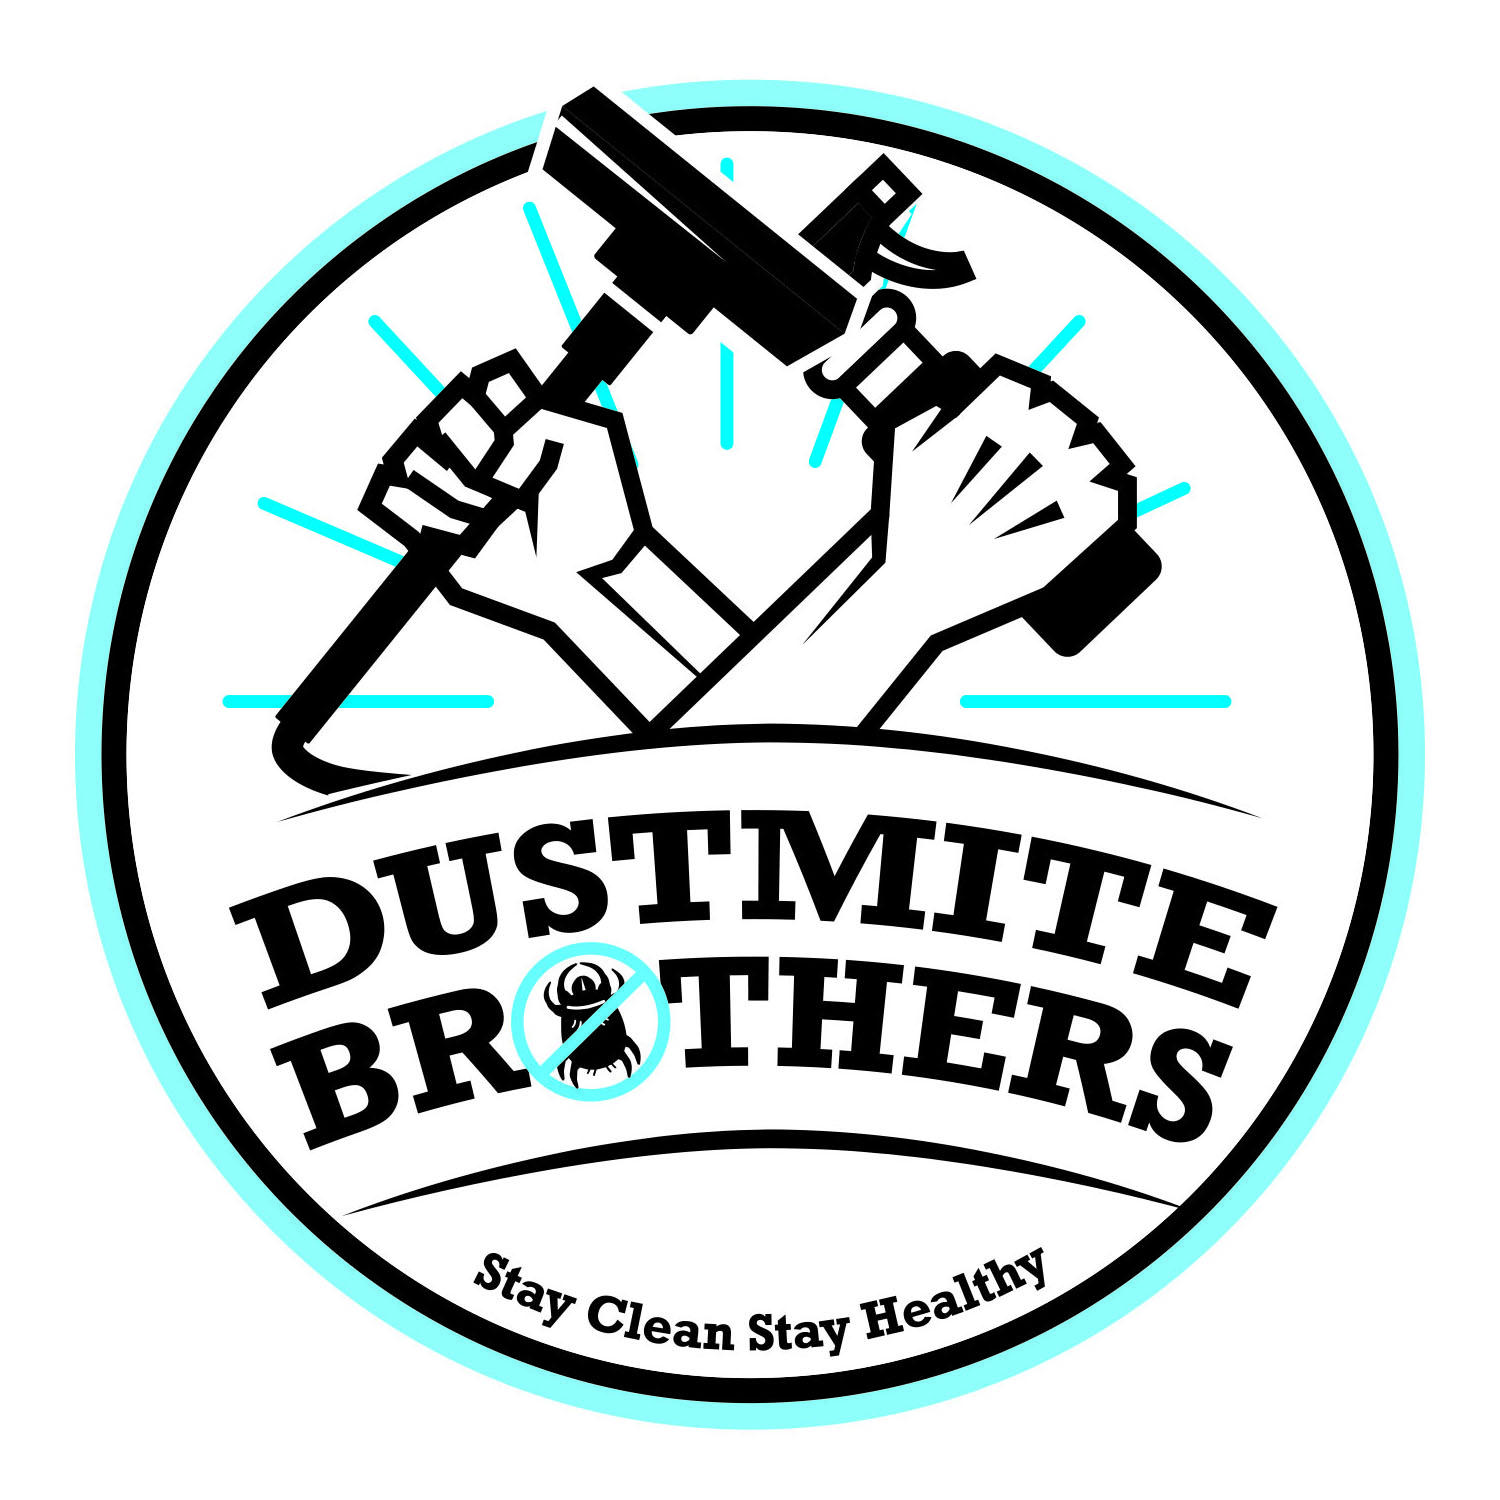 Dustmite Brothers Enterprise Logo